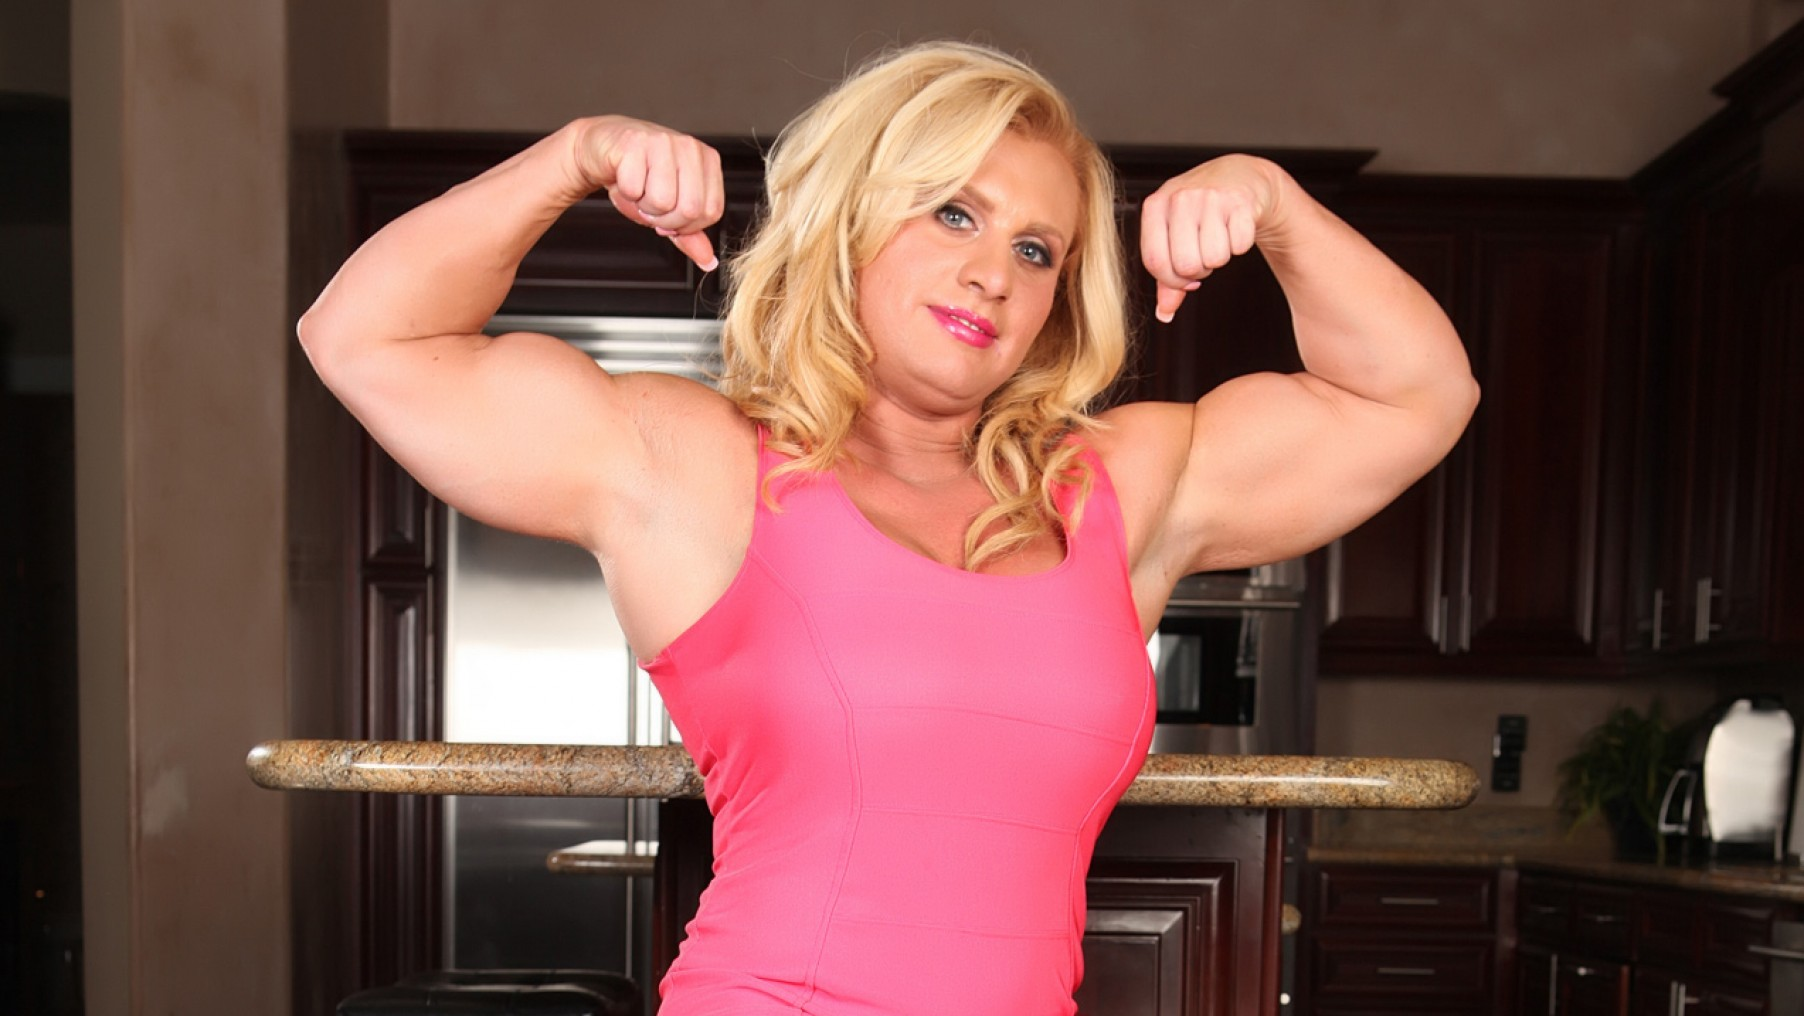 Photos - Aziani Iron.com: is your source for Nude Female